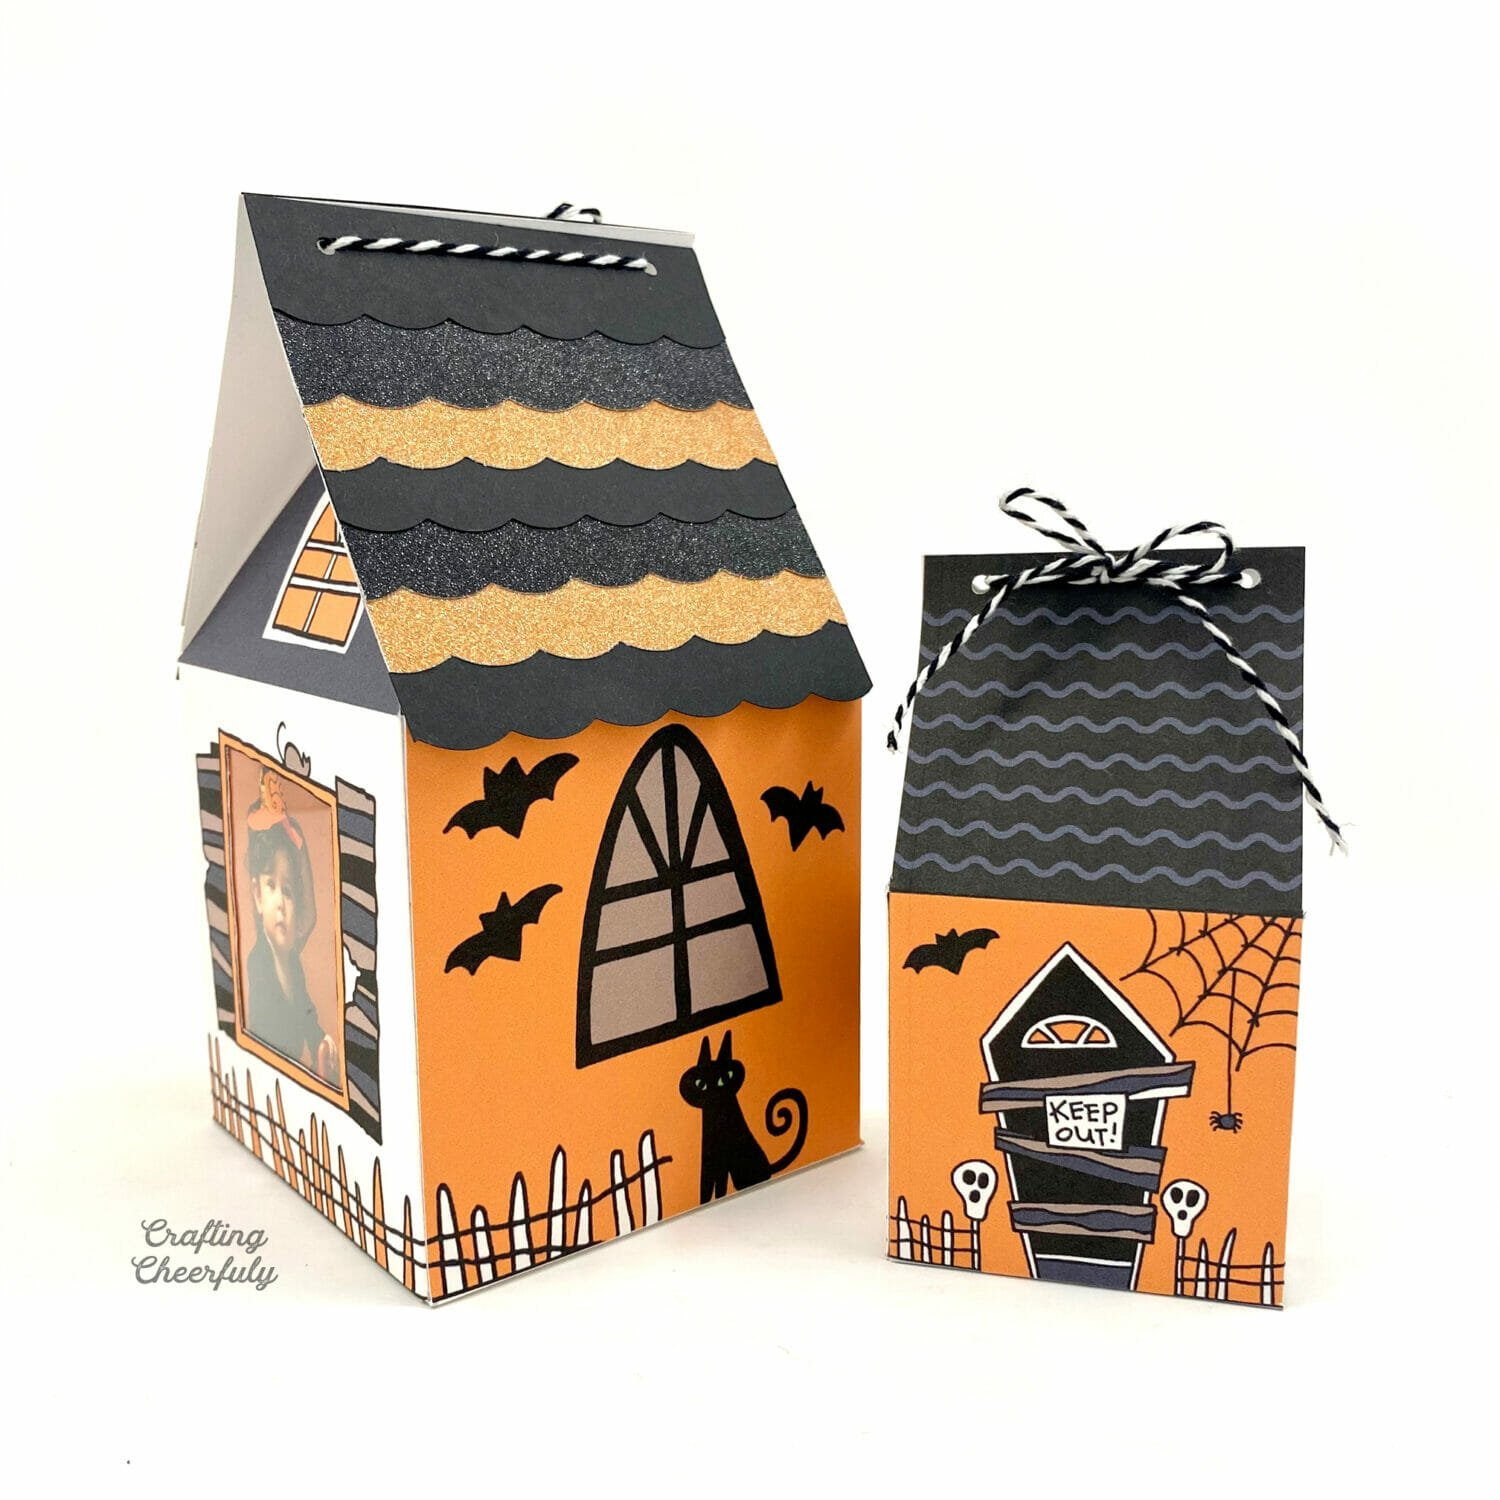 Printable DIY Haunted House treat boxes in orange, black and white.